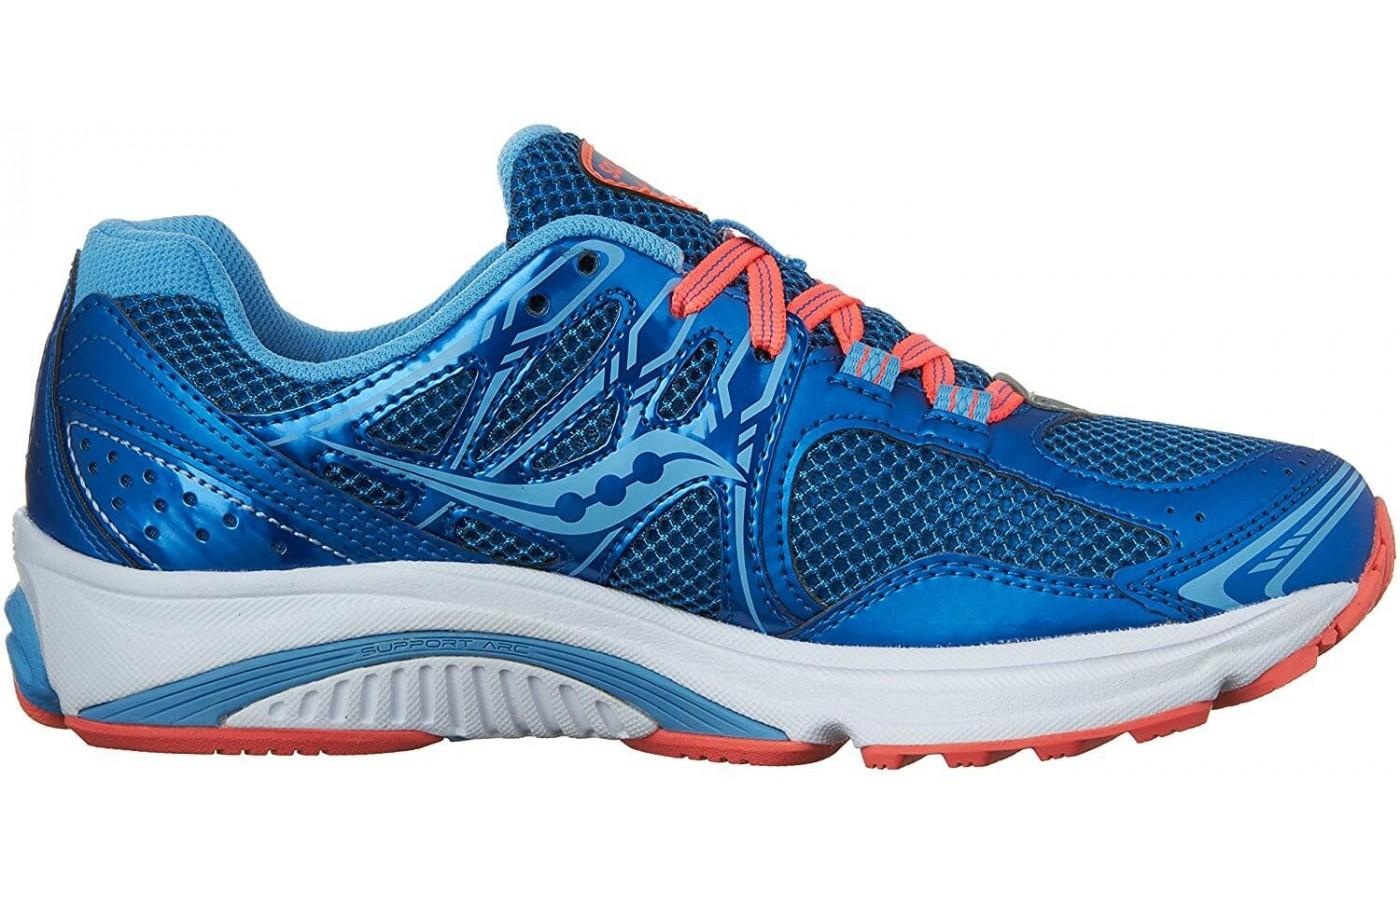 Saucony Lancer 2 in blue color with orange accents